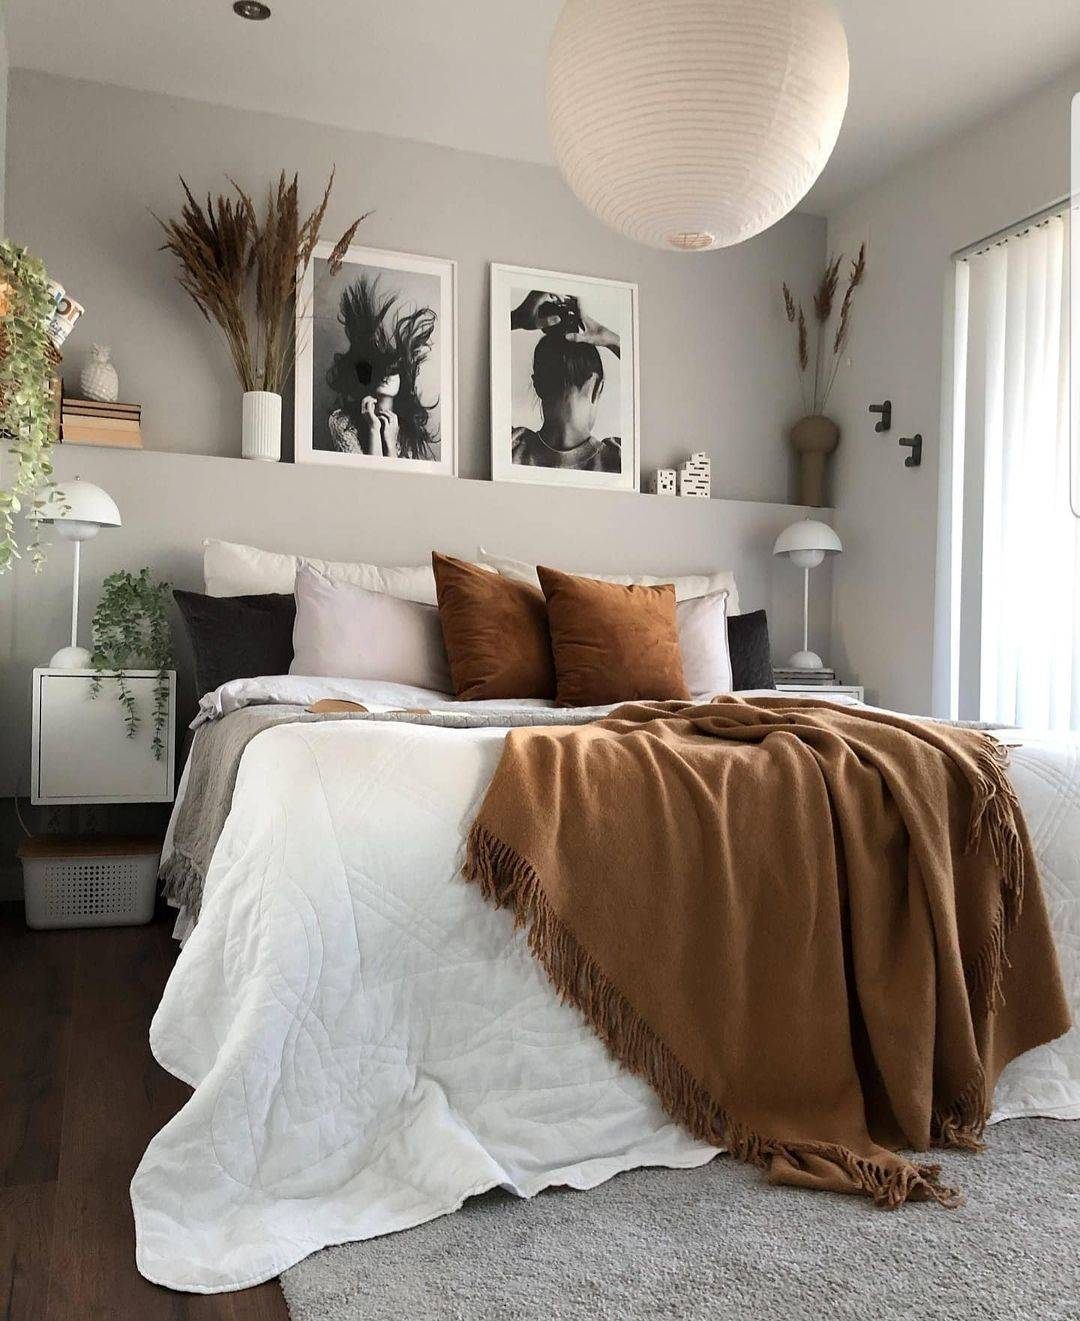 a nice freshly decorated bedroom